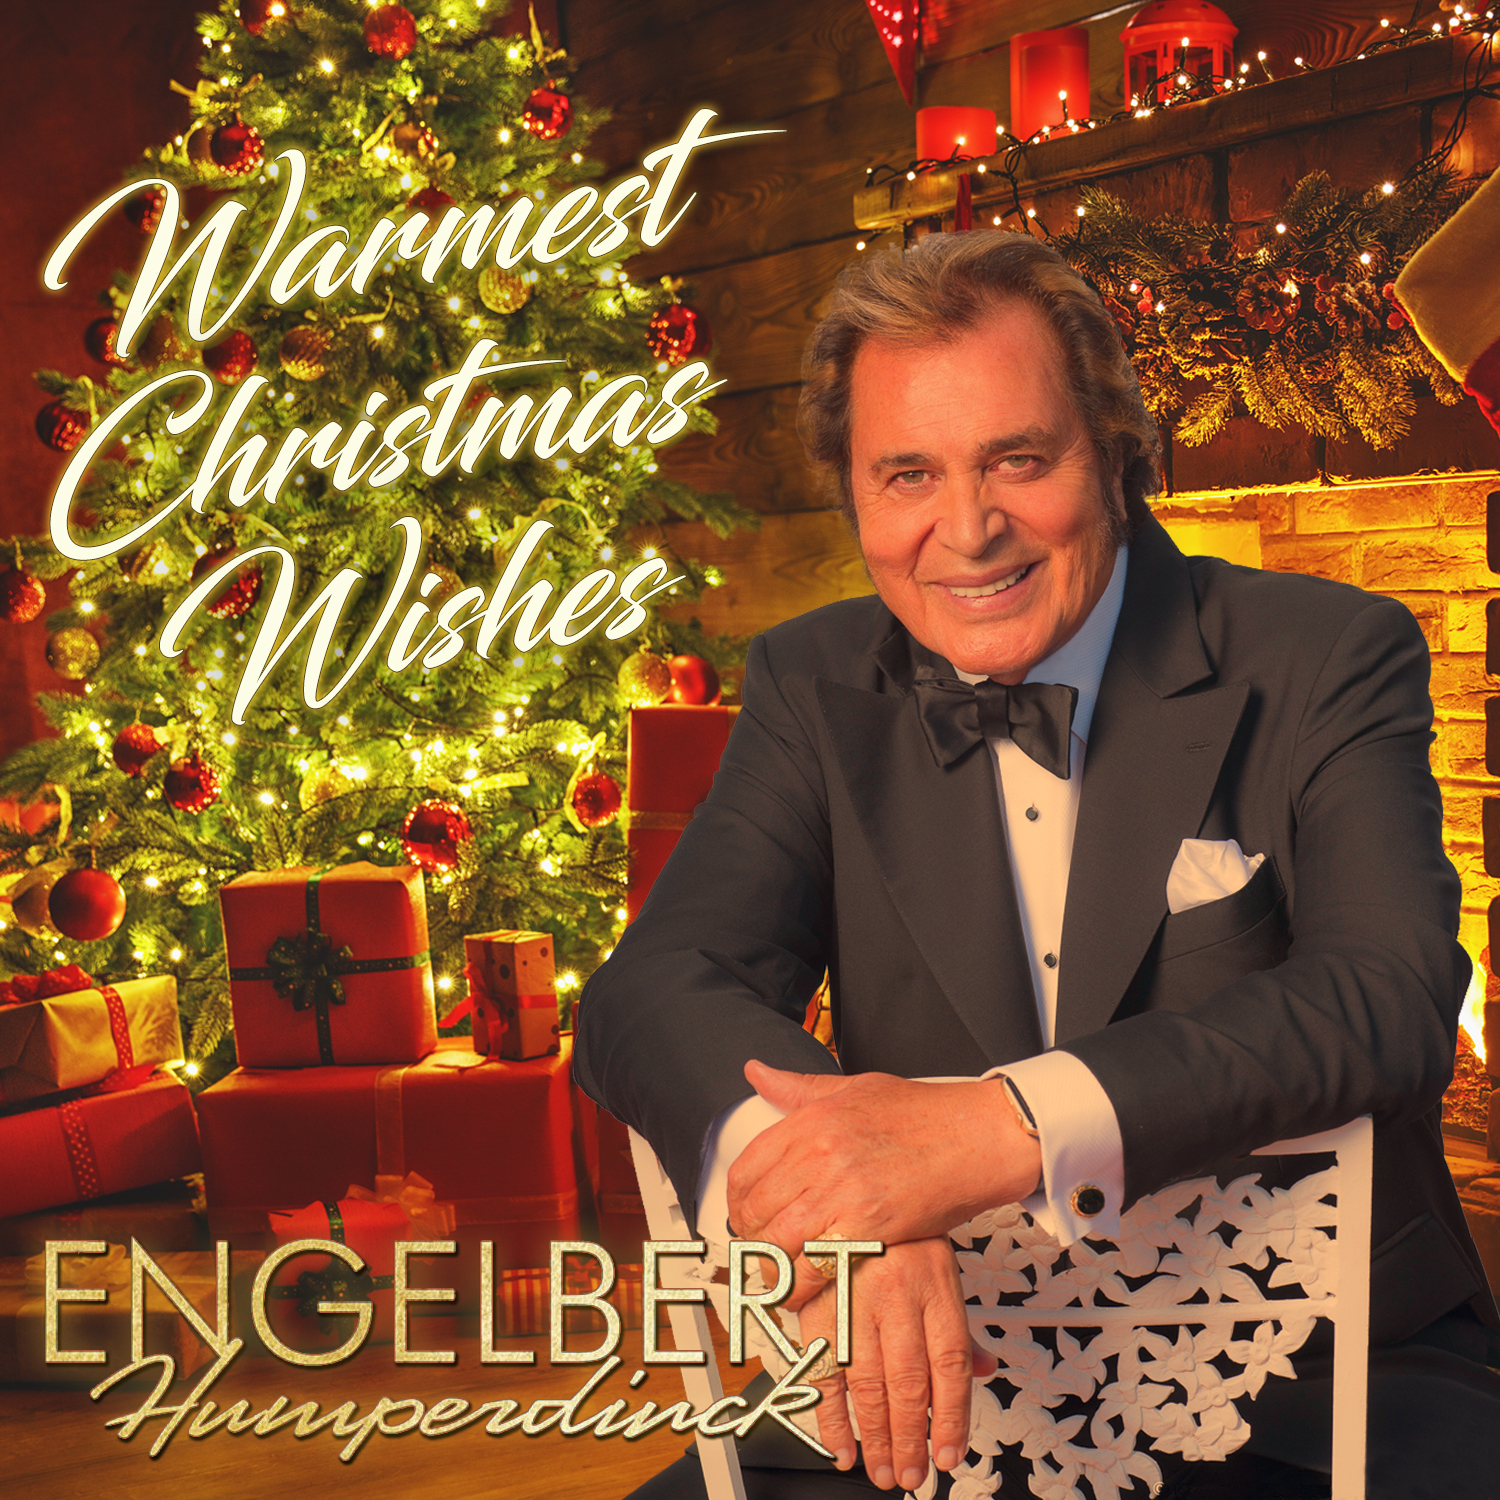 Engelbert Humperdinck to Release 'Warmest Christmas Wishes', His First Christmas Album in Almost Forty Years